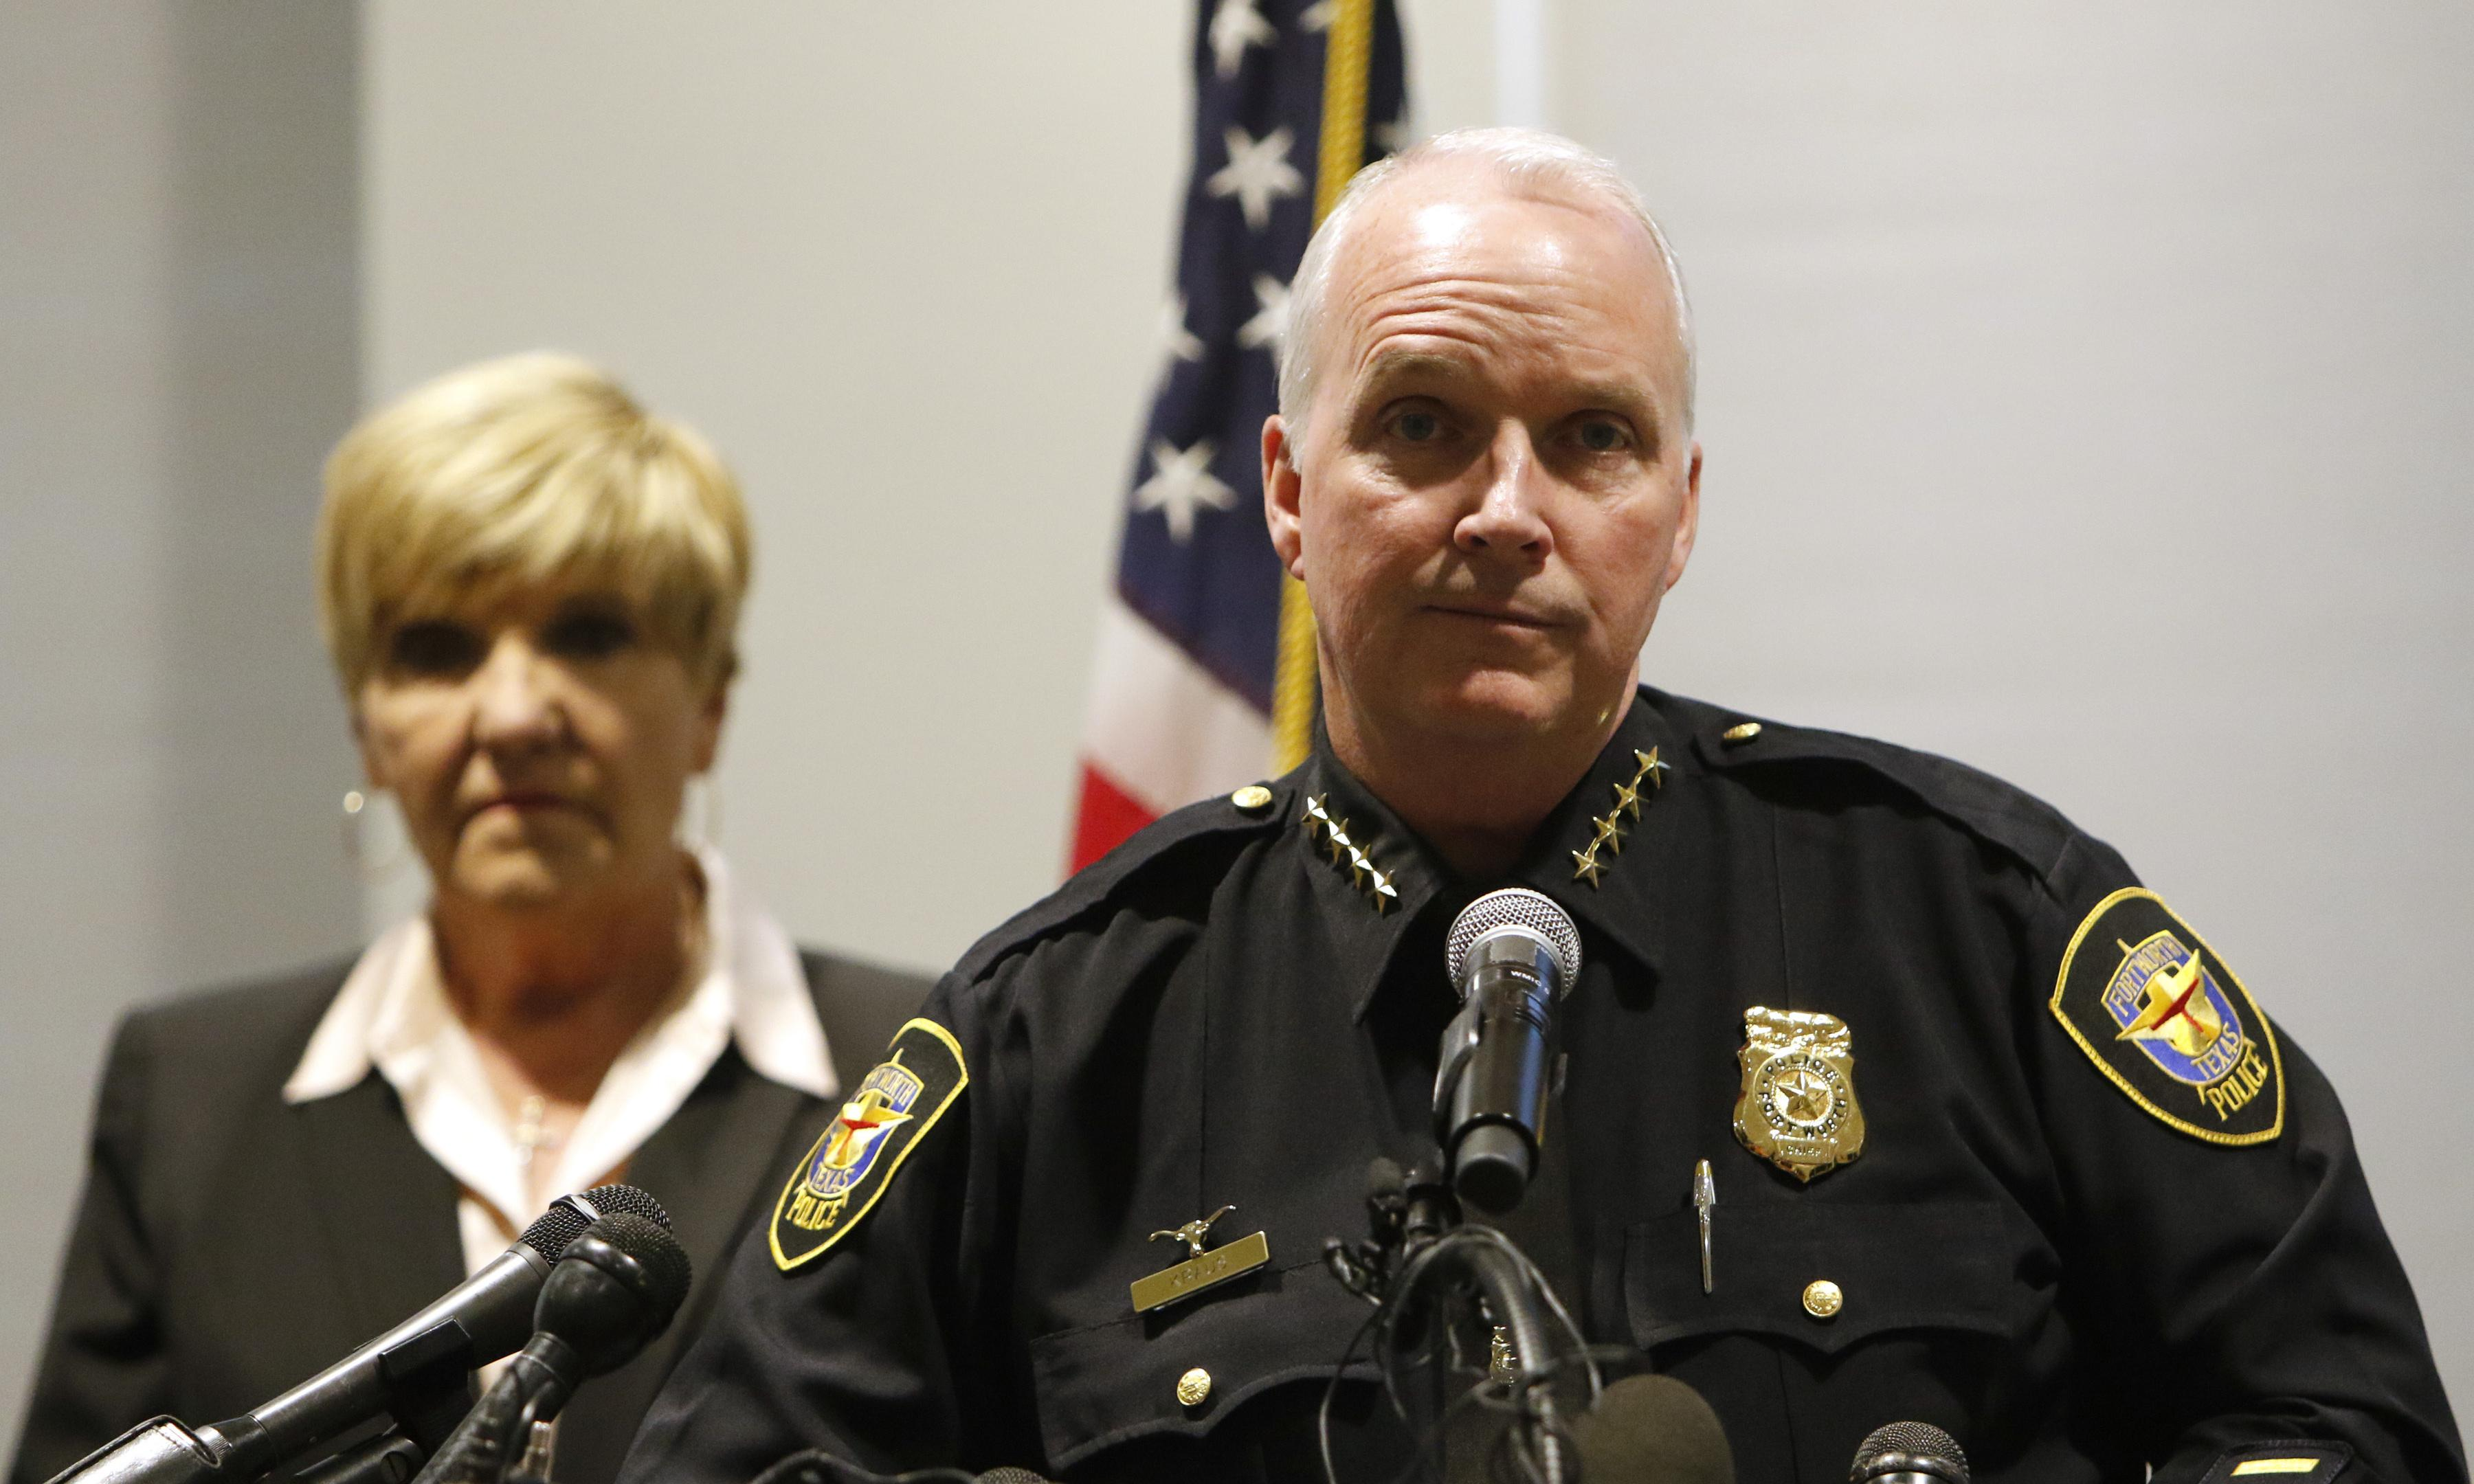 Fort Worth police chief: 'absolutely no excuse' for officer killing black woman